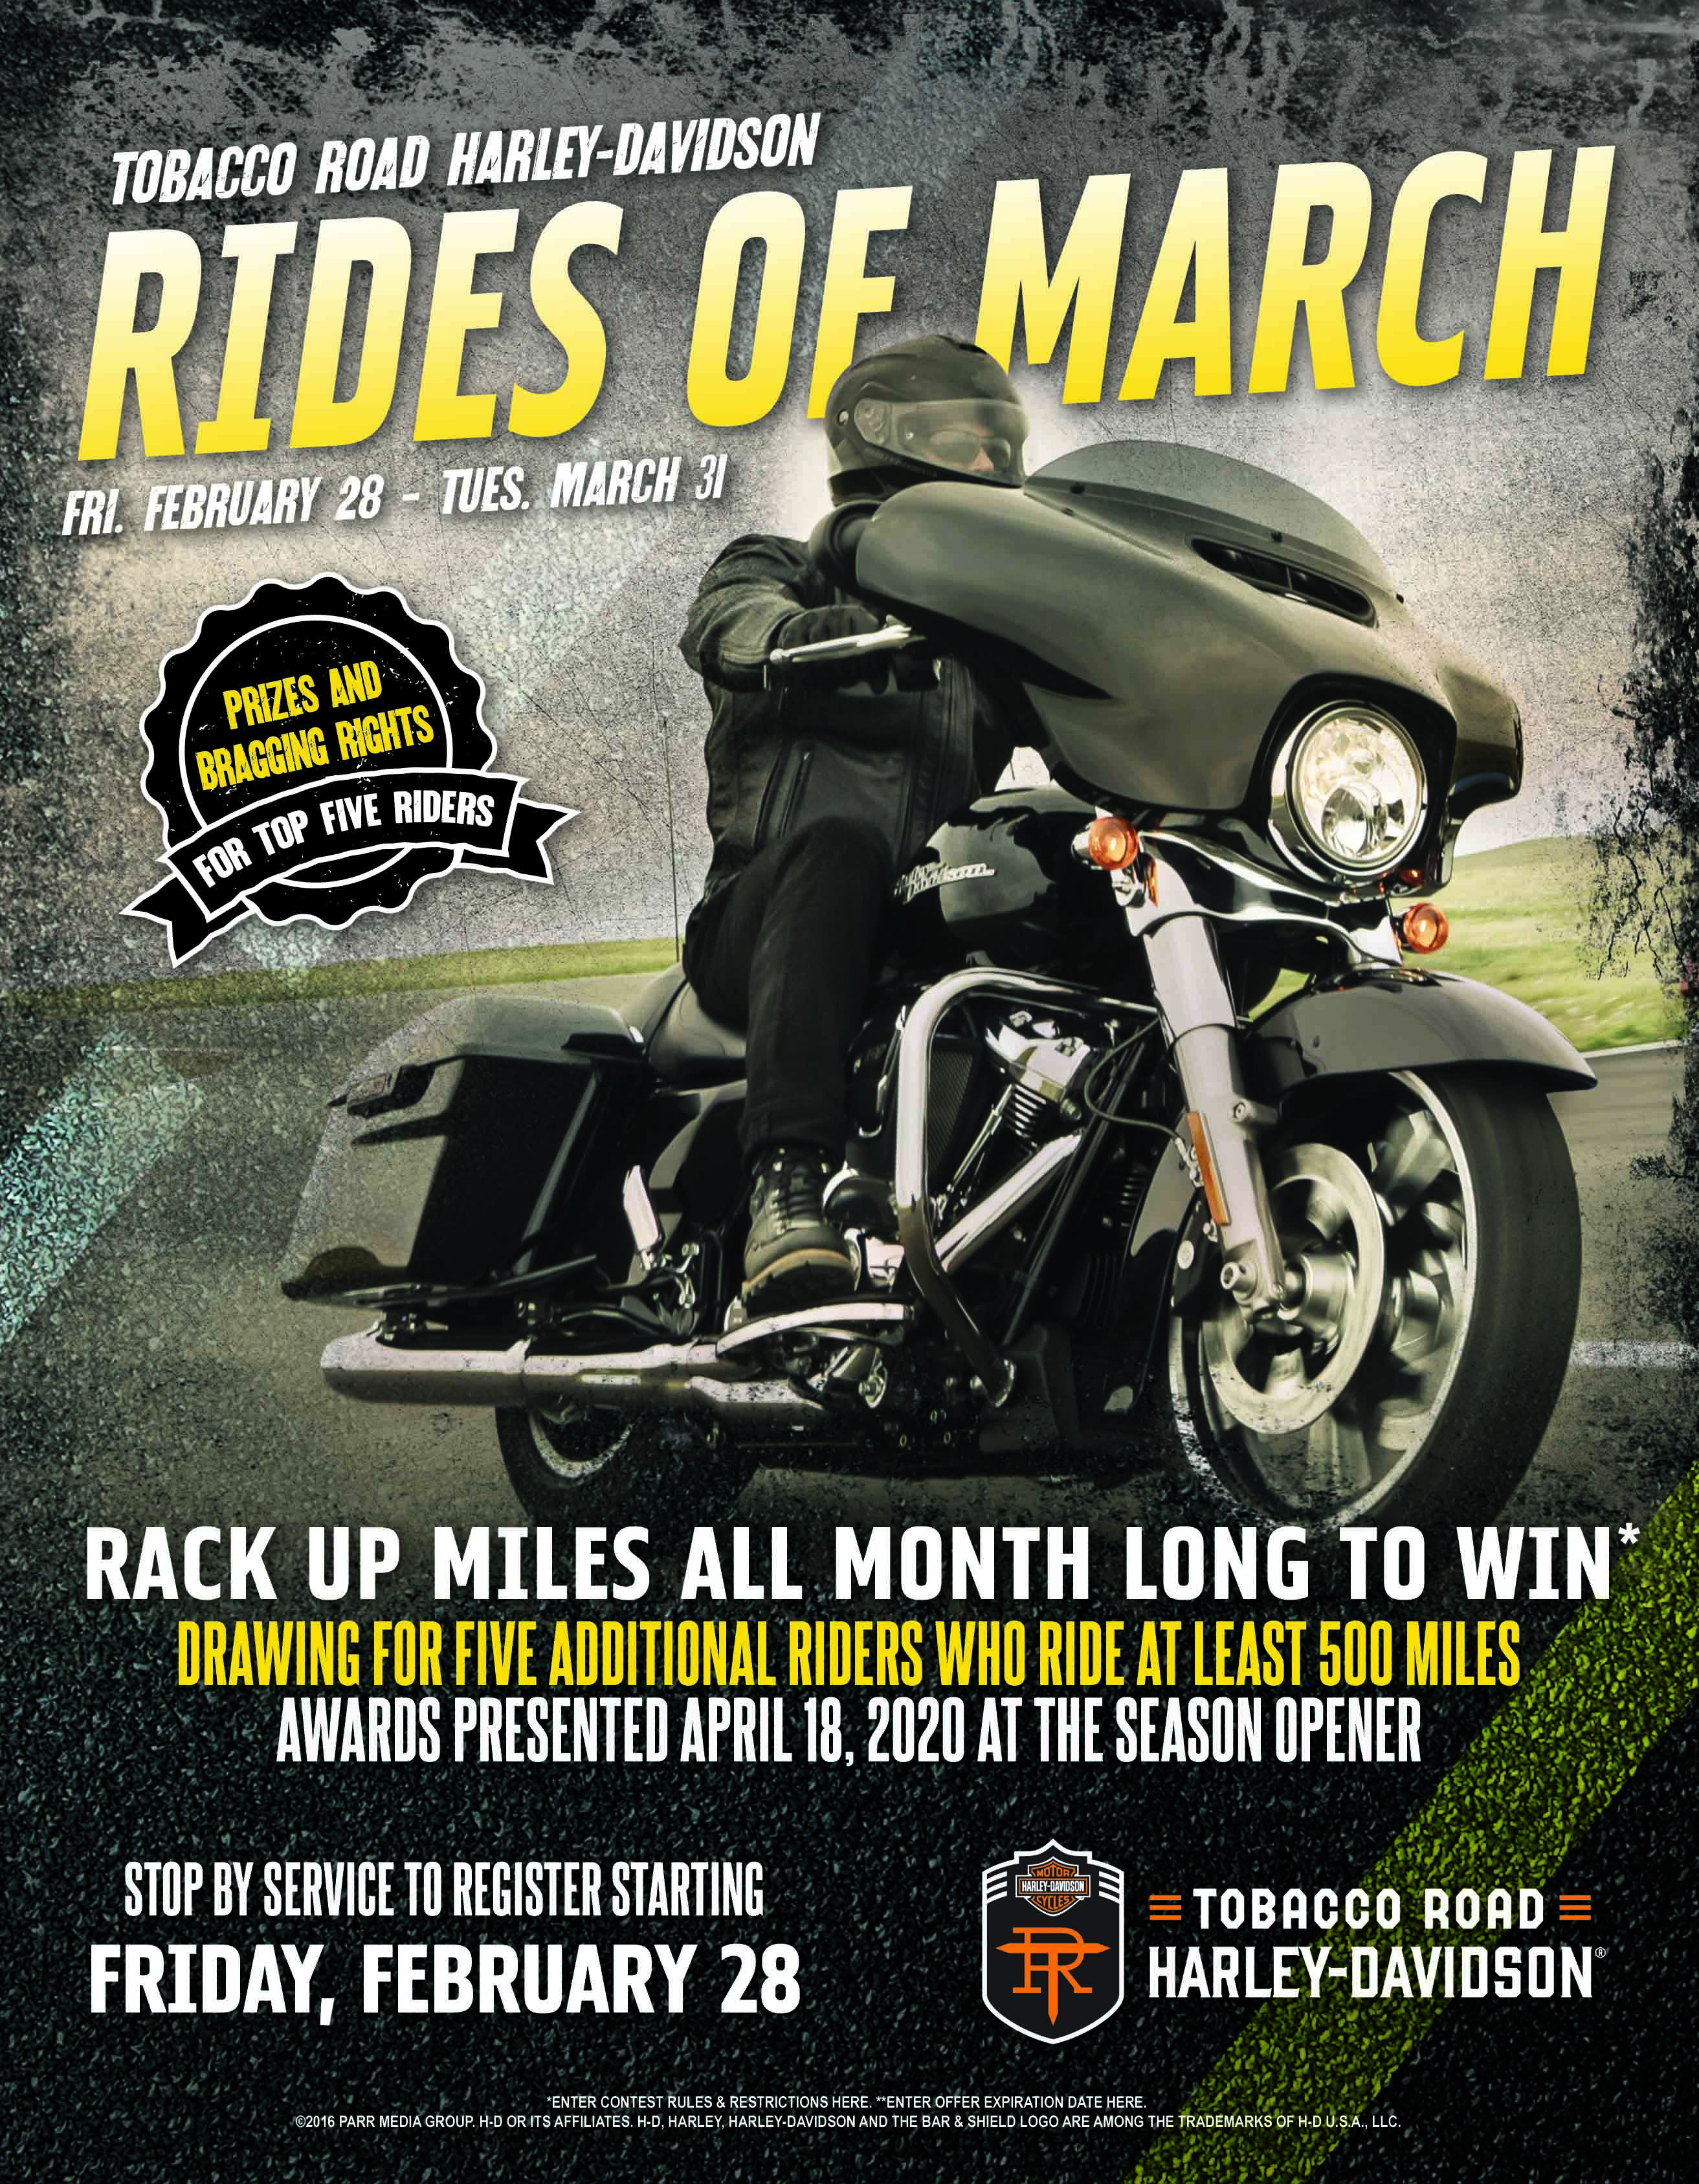 Rides of March Miles riding Harley-Davidson Motorcycles